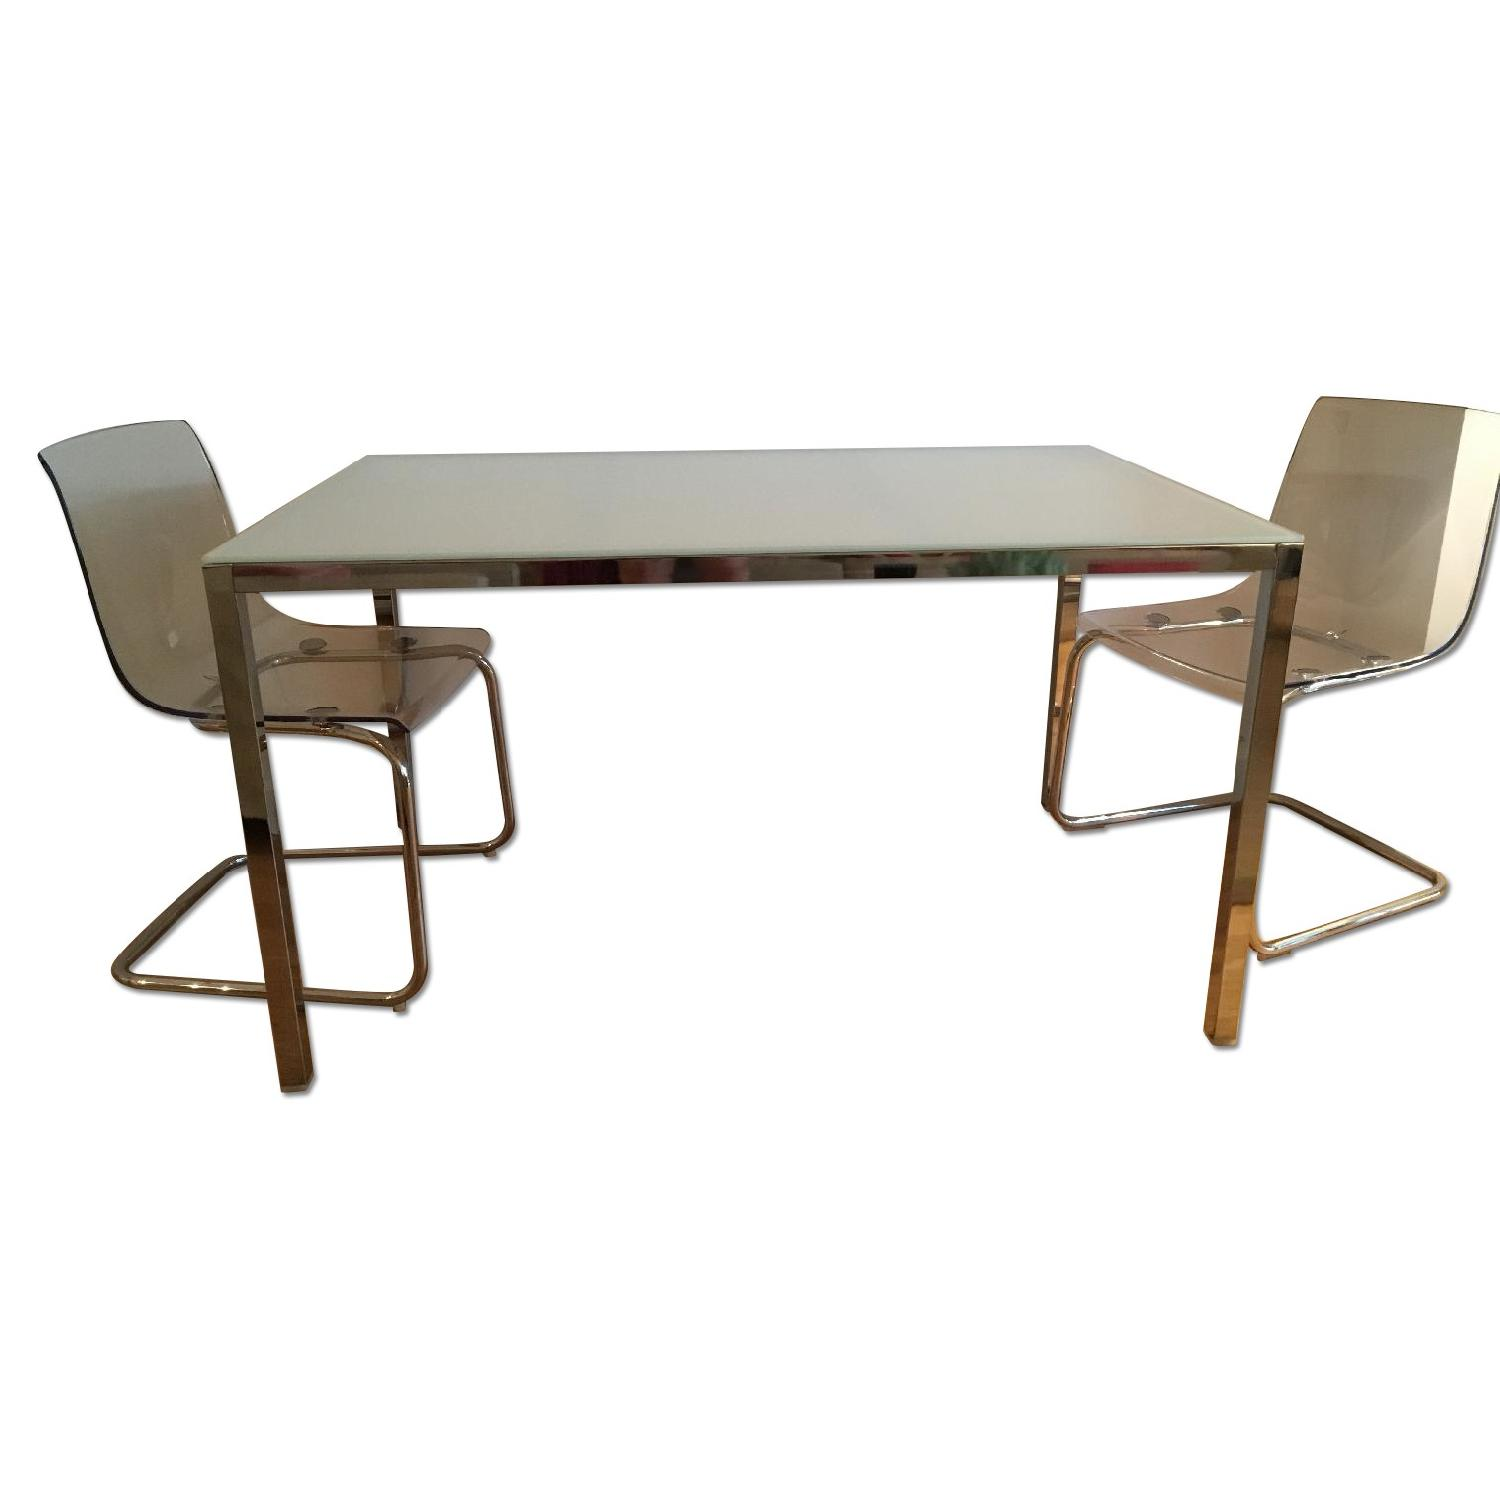 Ikea Torsby Glass Table W/ 2 Tobias Lucite Chairs ...